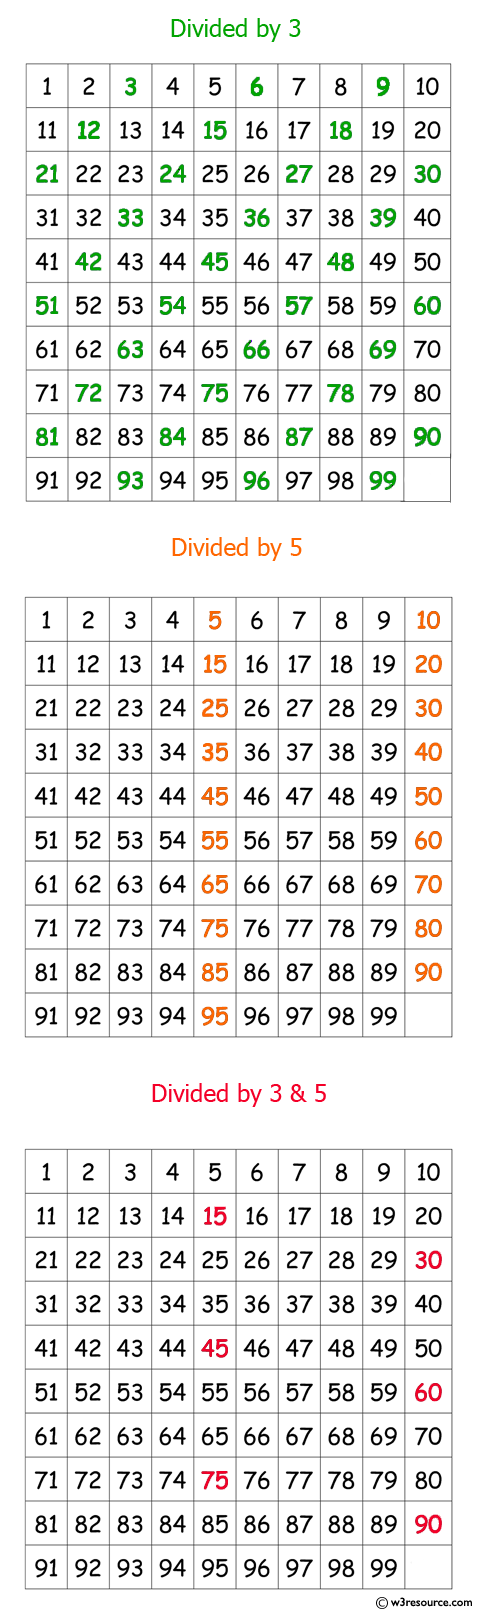 Java exercises: Print numbers between 1 to 100 which are divisible